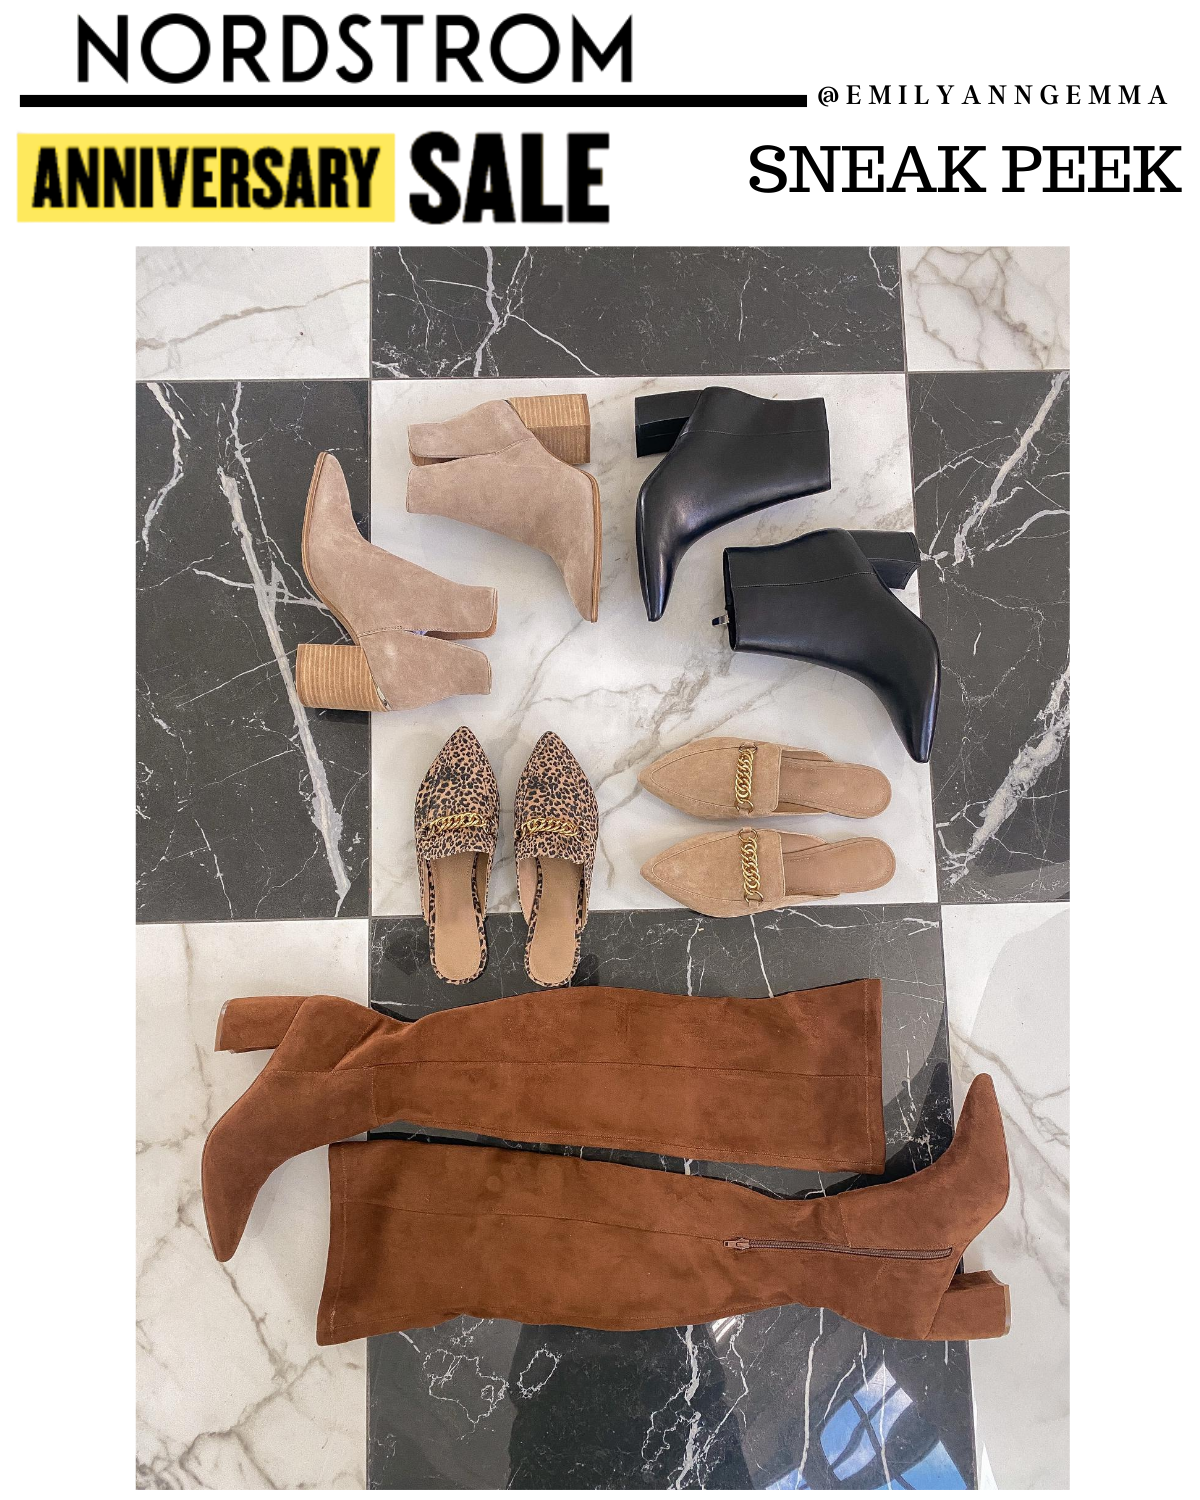 nsale 2020 boots and booties, nordstrom anniversay sale 2020 blog posts, nsale preview 2020, emily ann gemma, the sweetest thing blog | Nordstrom Anniversary Sale by popular US fashion blog, The Sweetest Thing: image of various Nordstrom mules, Nordstrom ankle boots, and Nordstrom knee high boots.